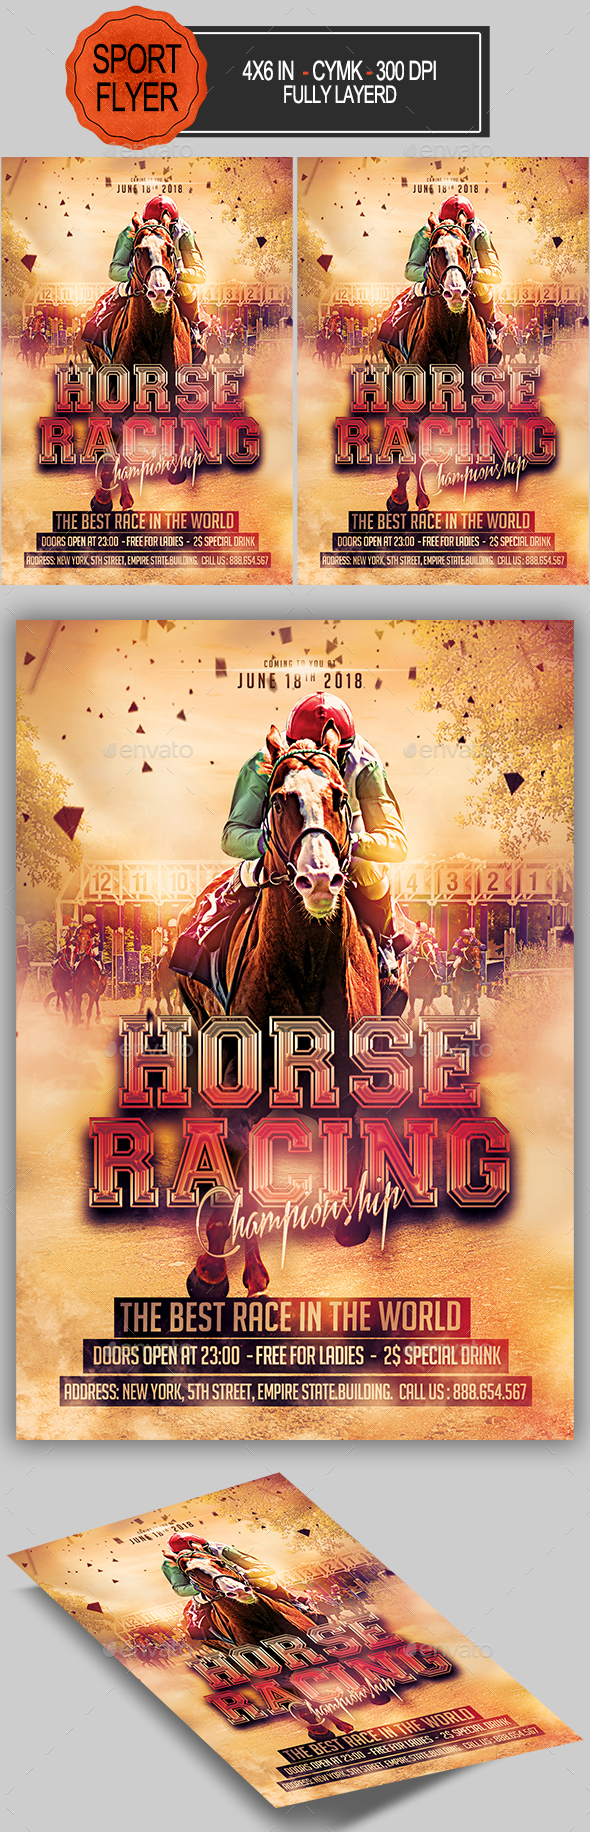 Horse Racing Championship Flyer - Sports Events